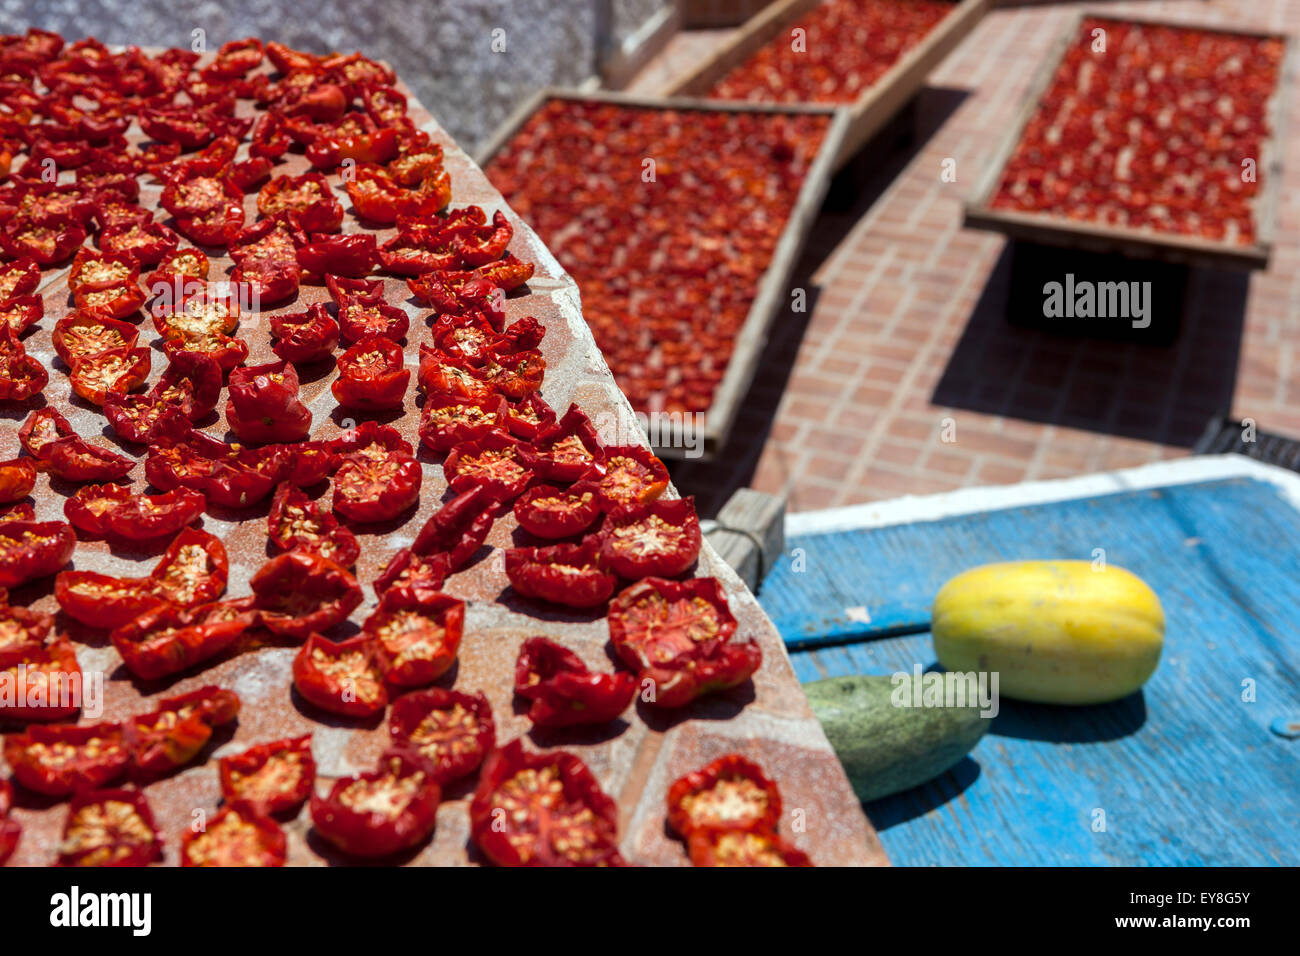 Drying tomatoes on the sun in Greek village Oia, Santorini, Cyclades, Greece food Stock Photo